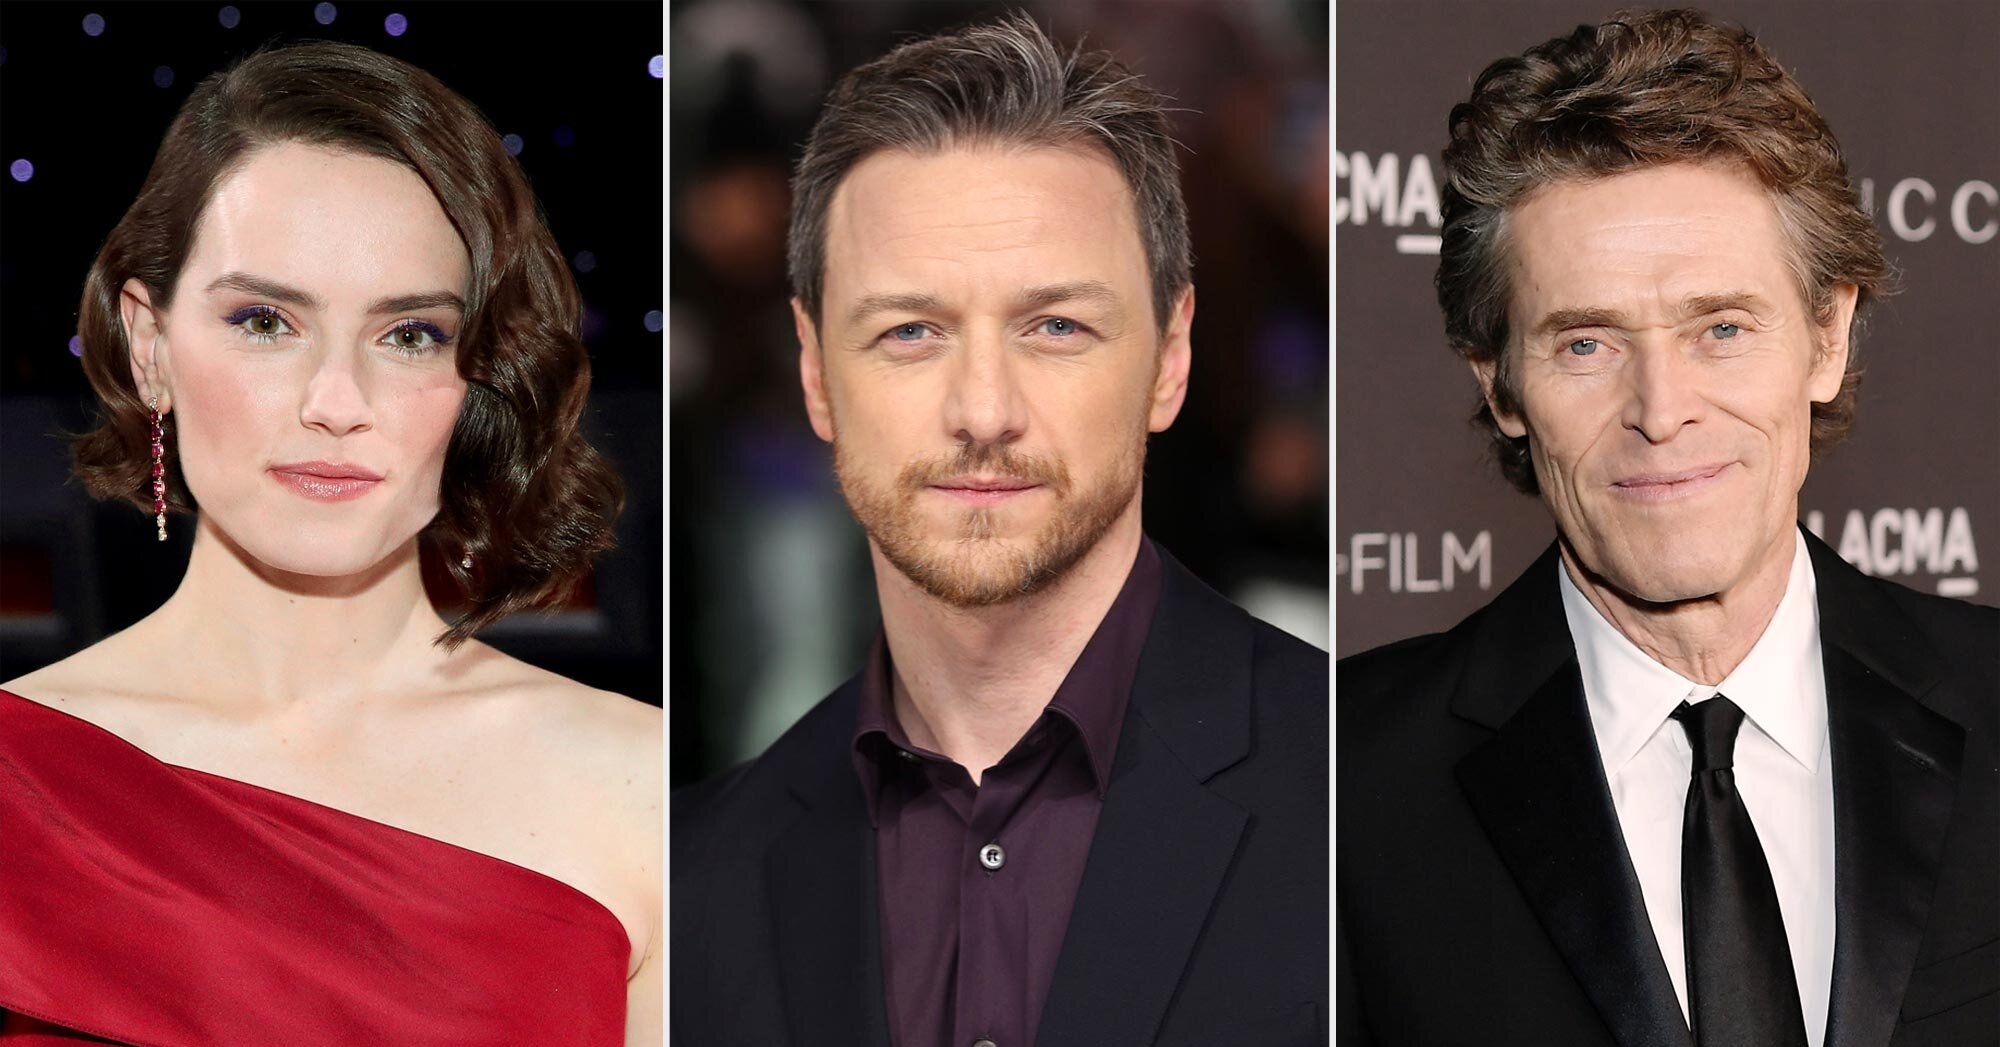 Daisy Ridley and James McAvoy lead 12 Minutes time-loop thriller cast |  EW.com